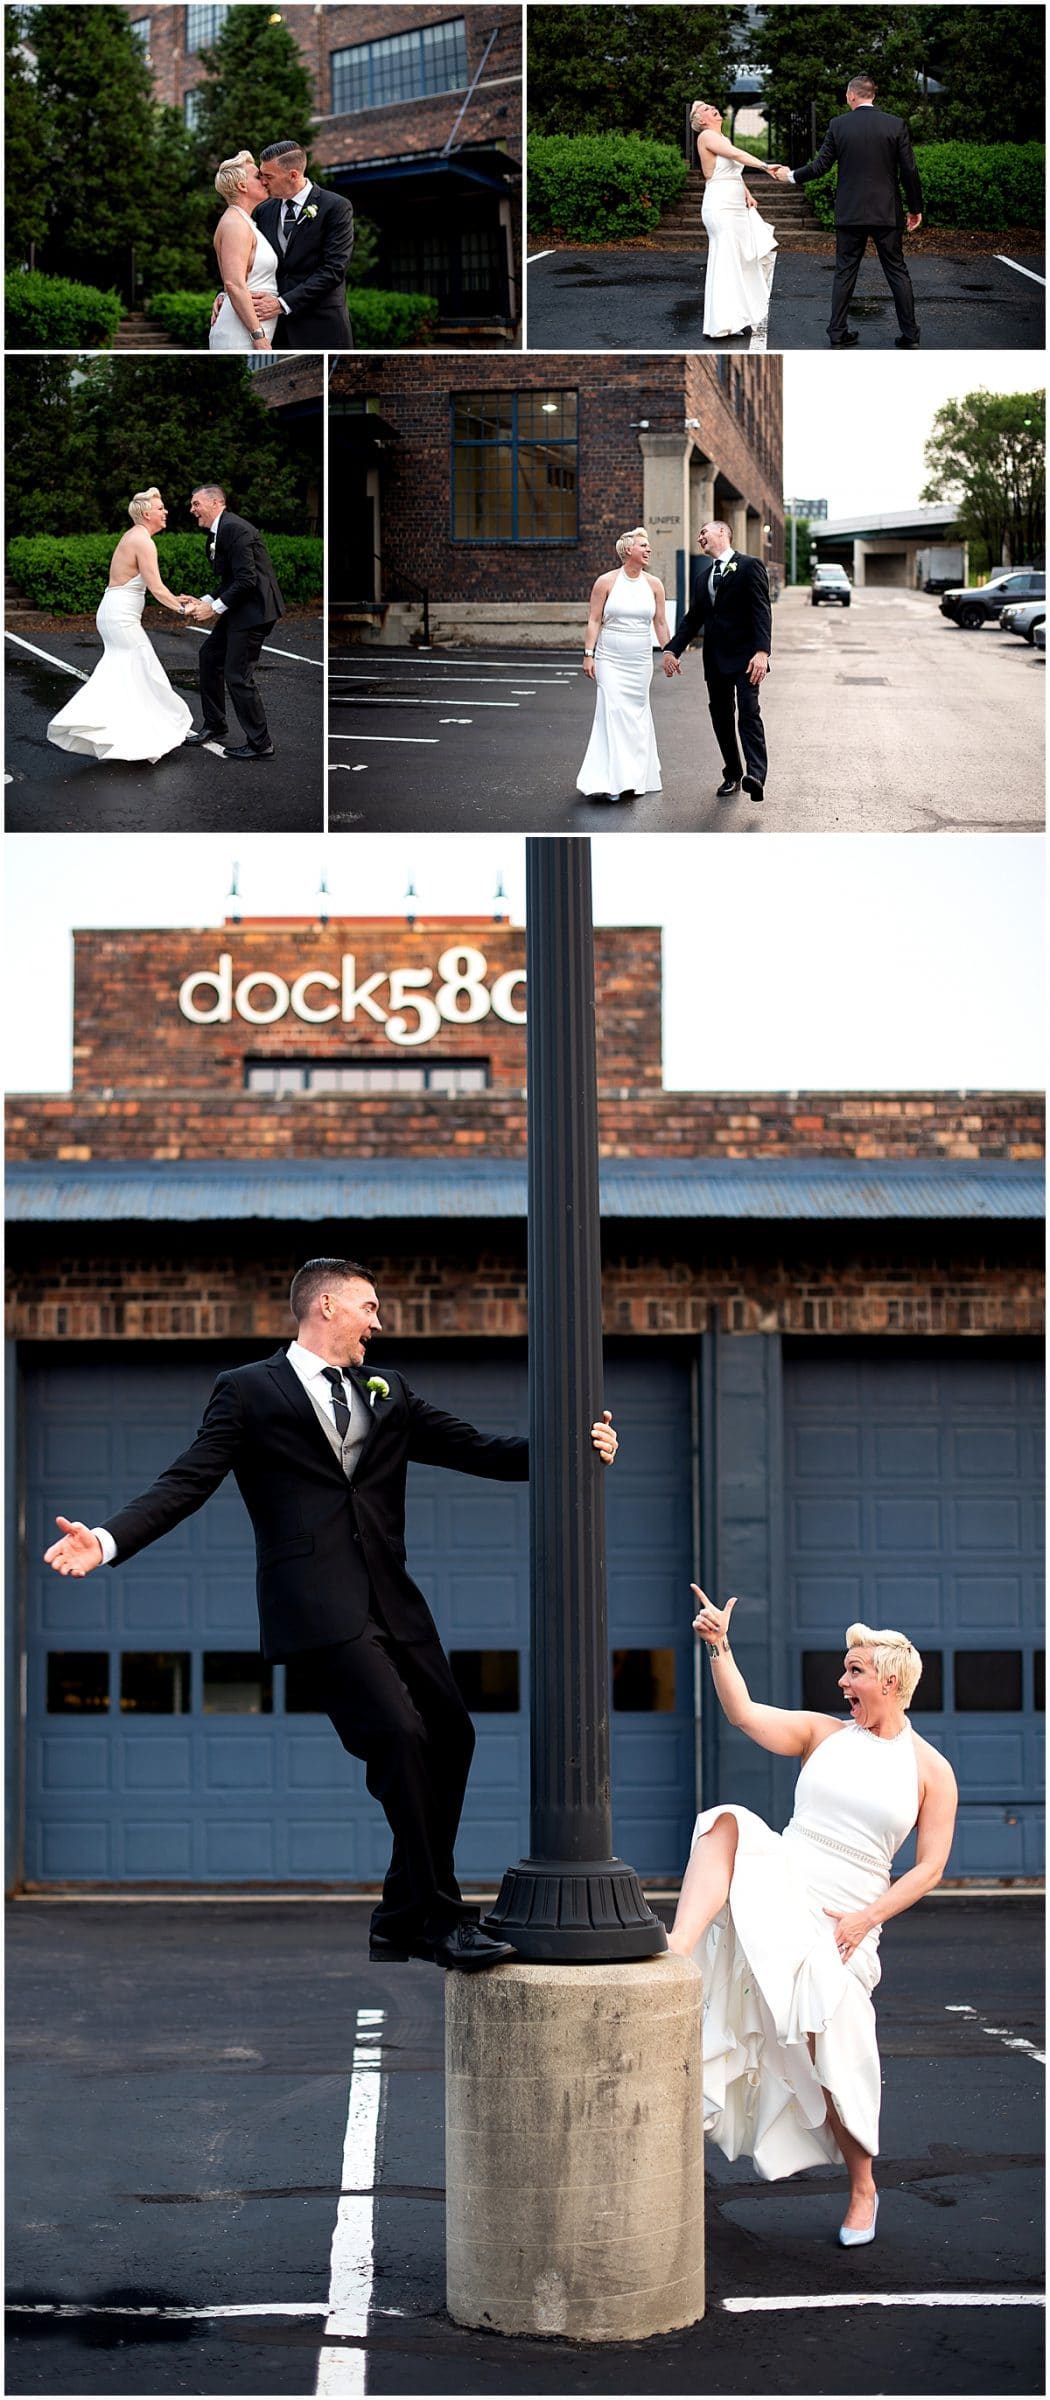 Wedding at The loft at dock 580